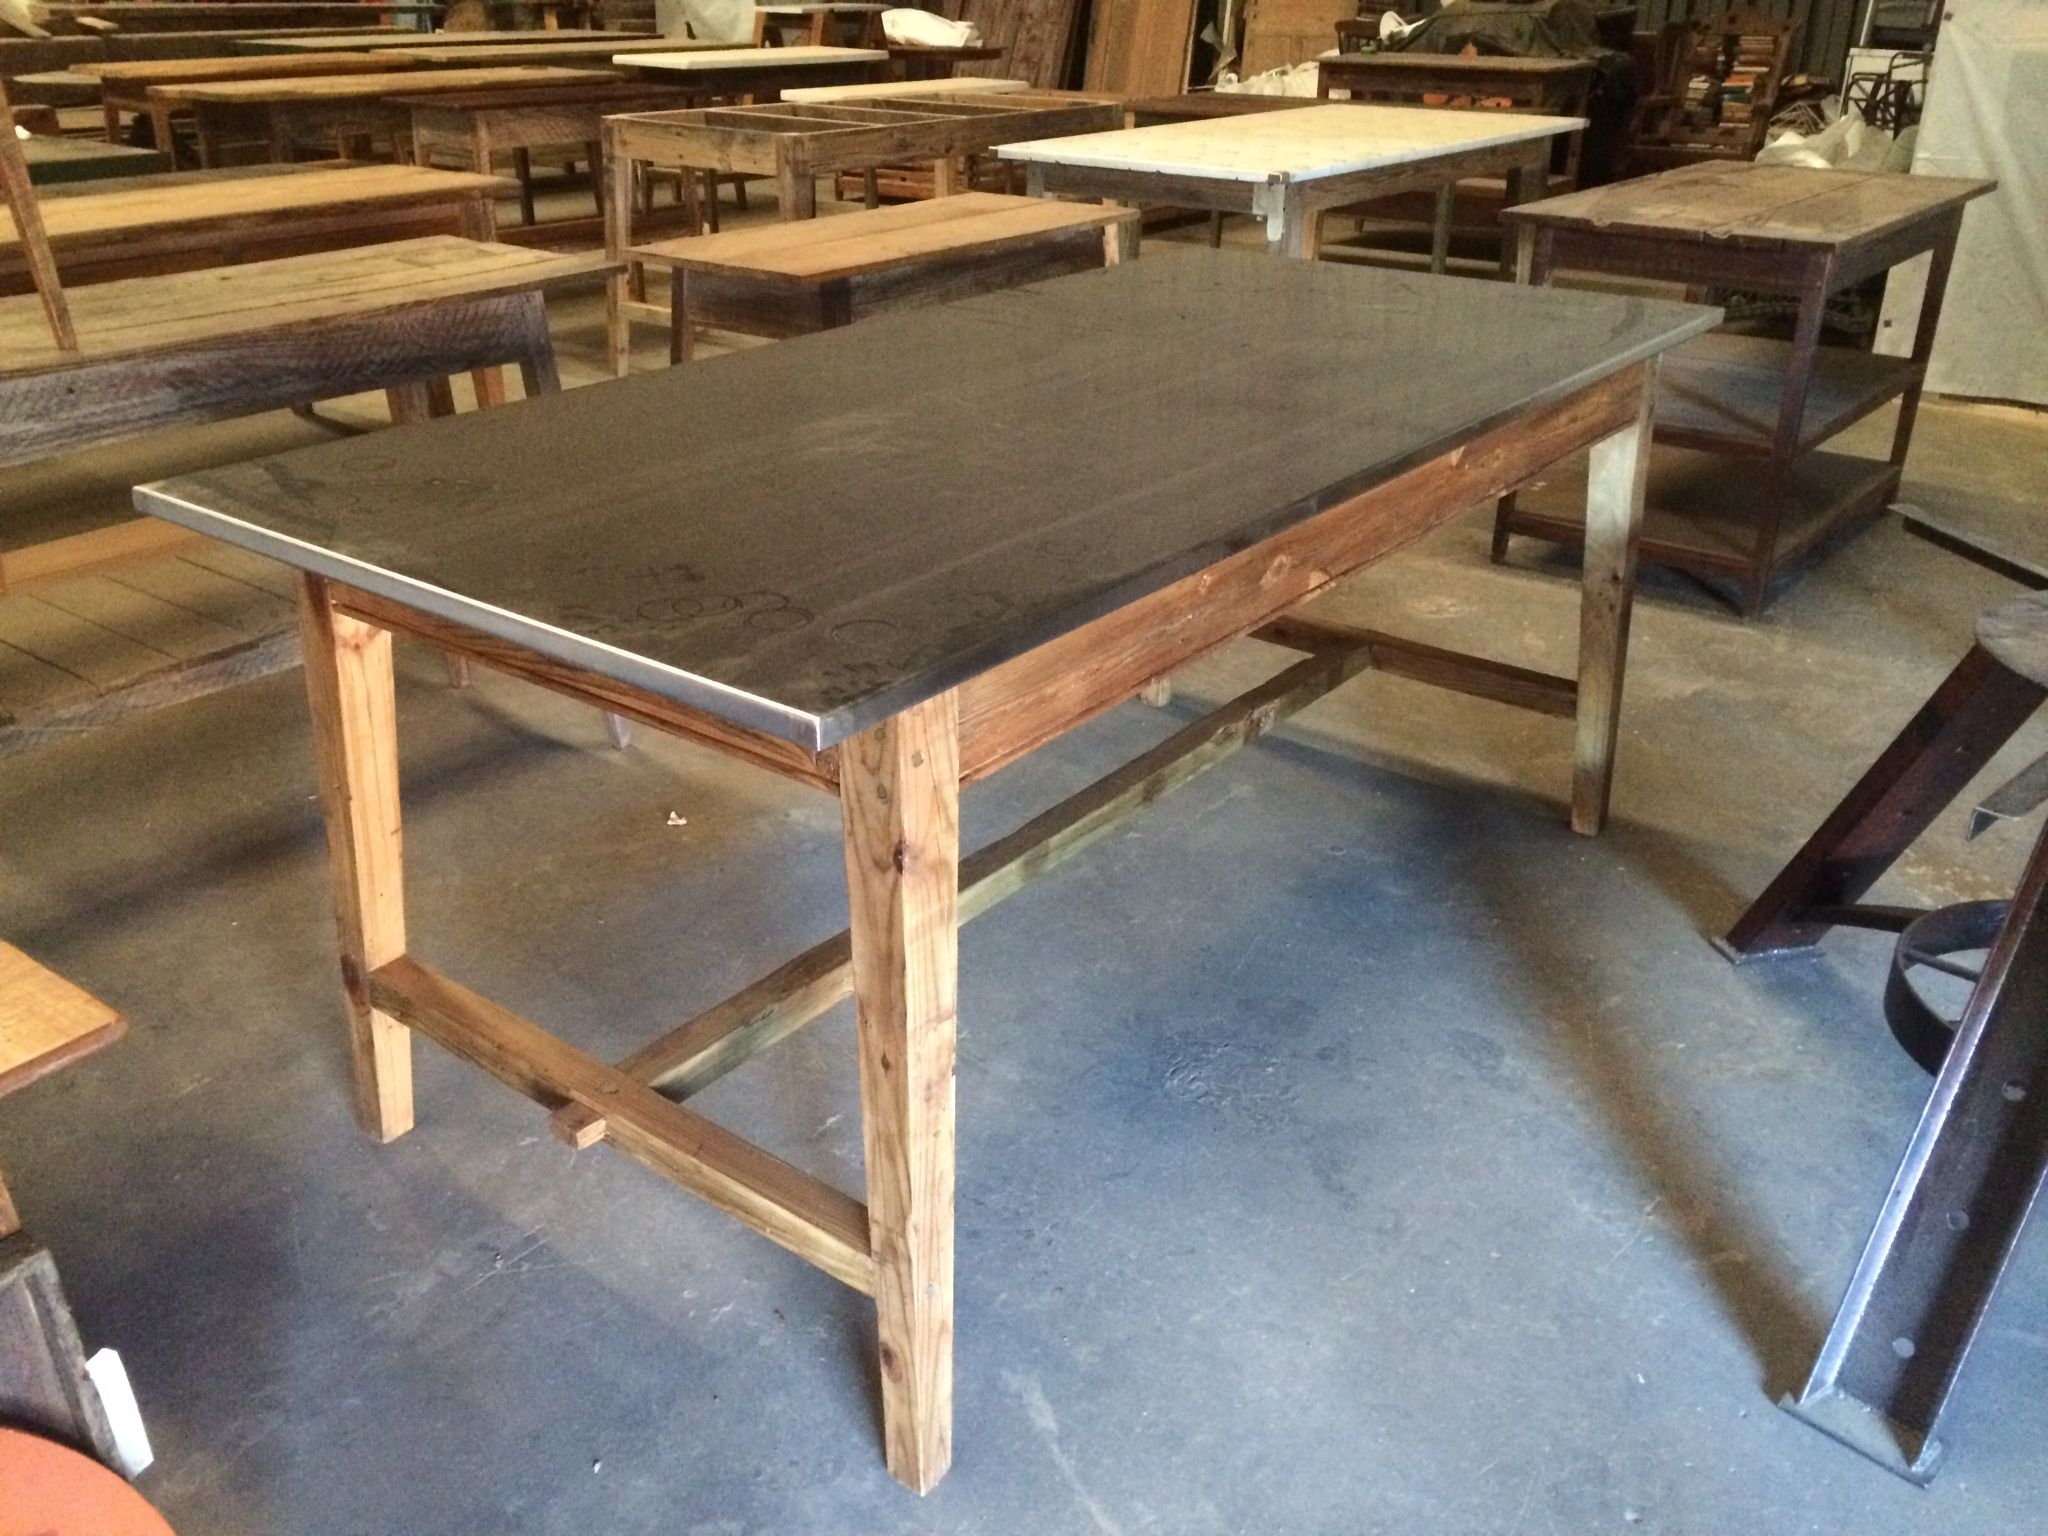 Incroyable KItchen Island With Stainless Steel Top. Base Made From Old Reclaimed Wood  By Landrum Tables Http://www.landrumtables.com